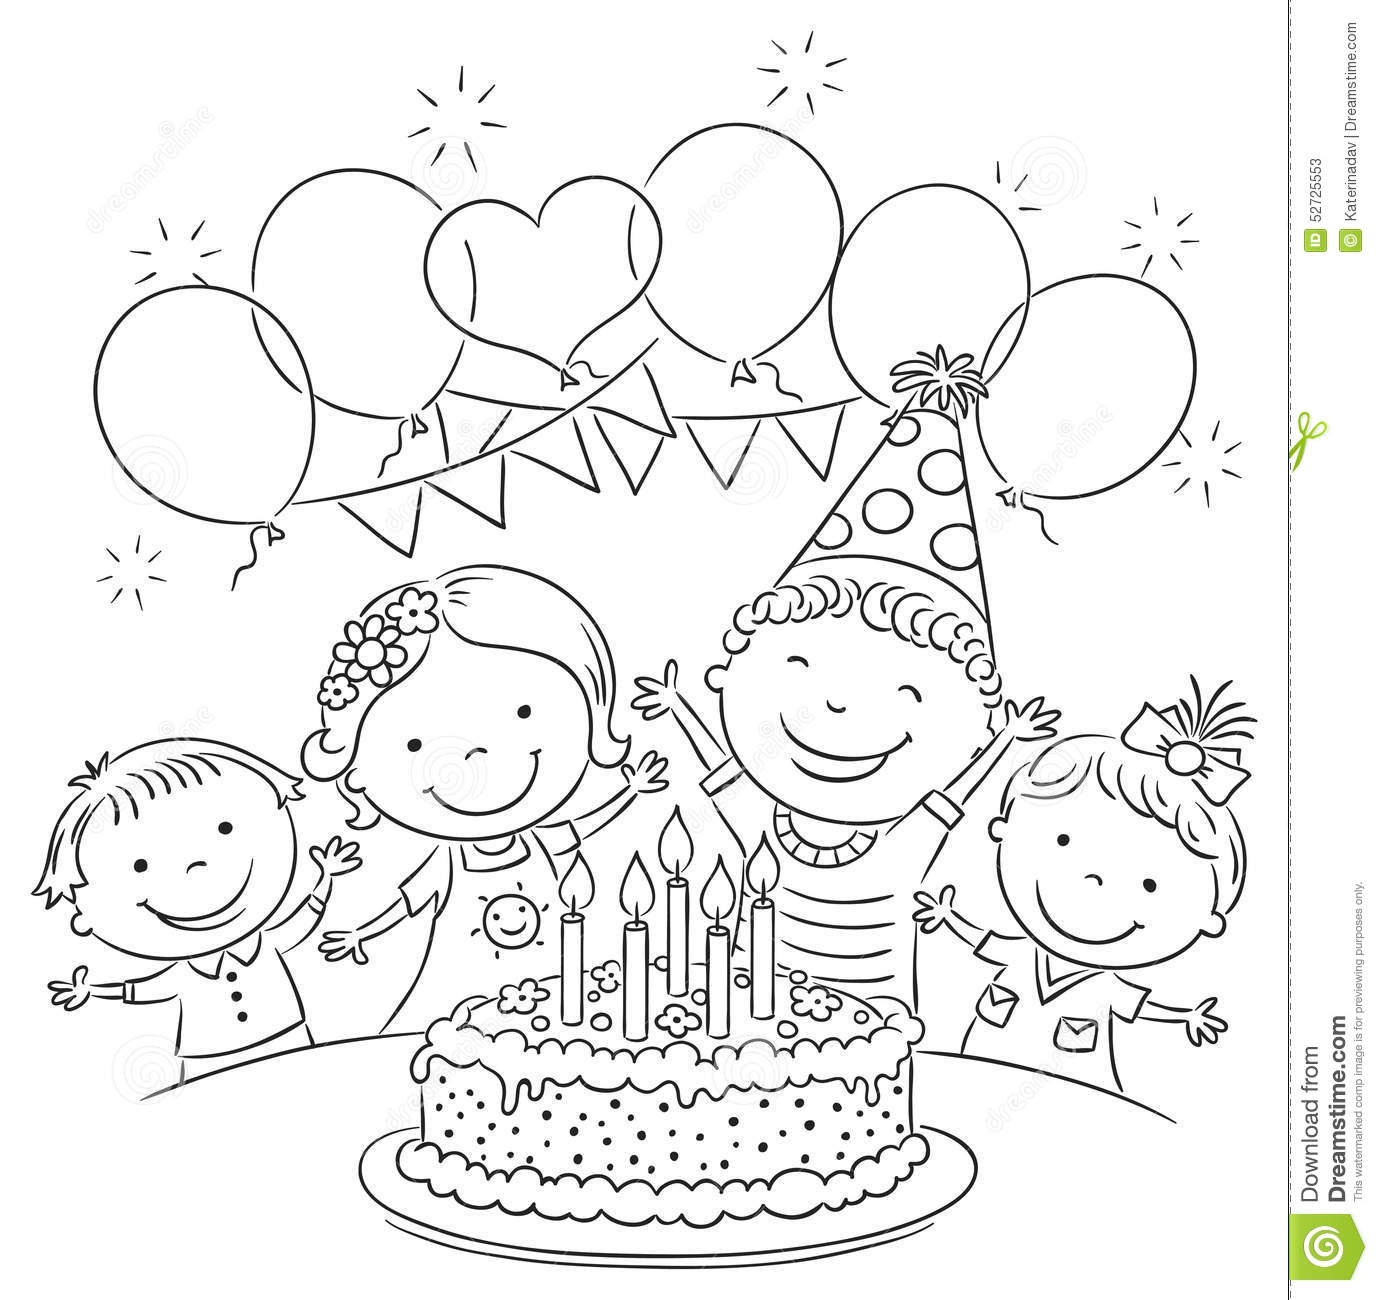 21783 Party free clipart.